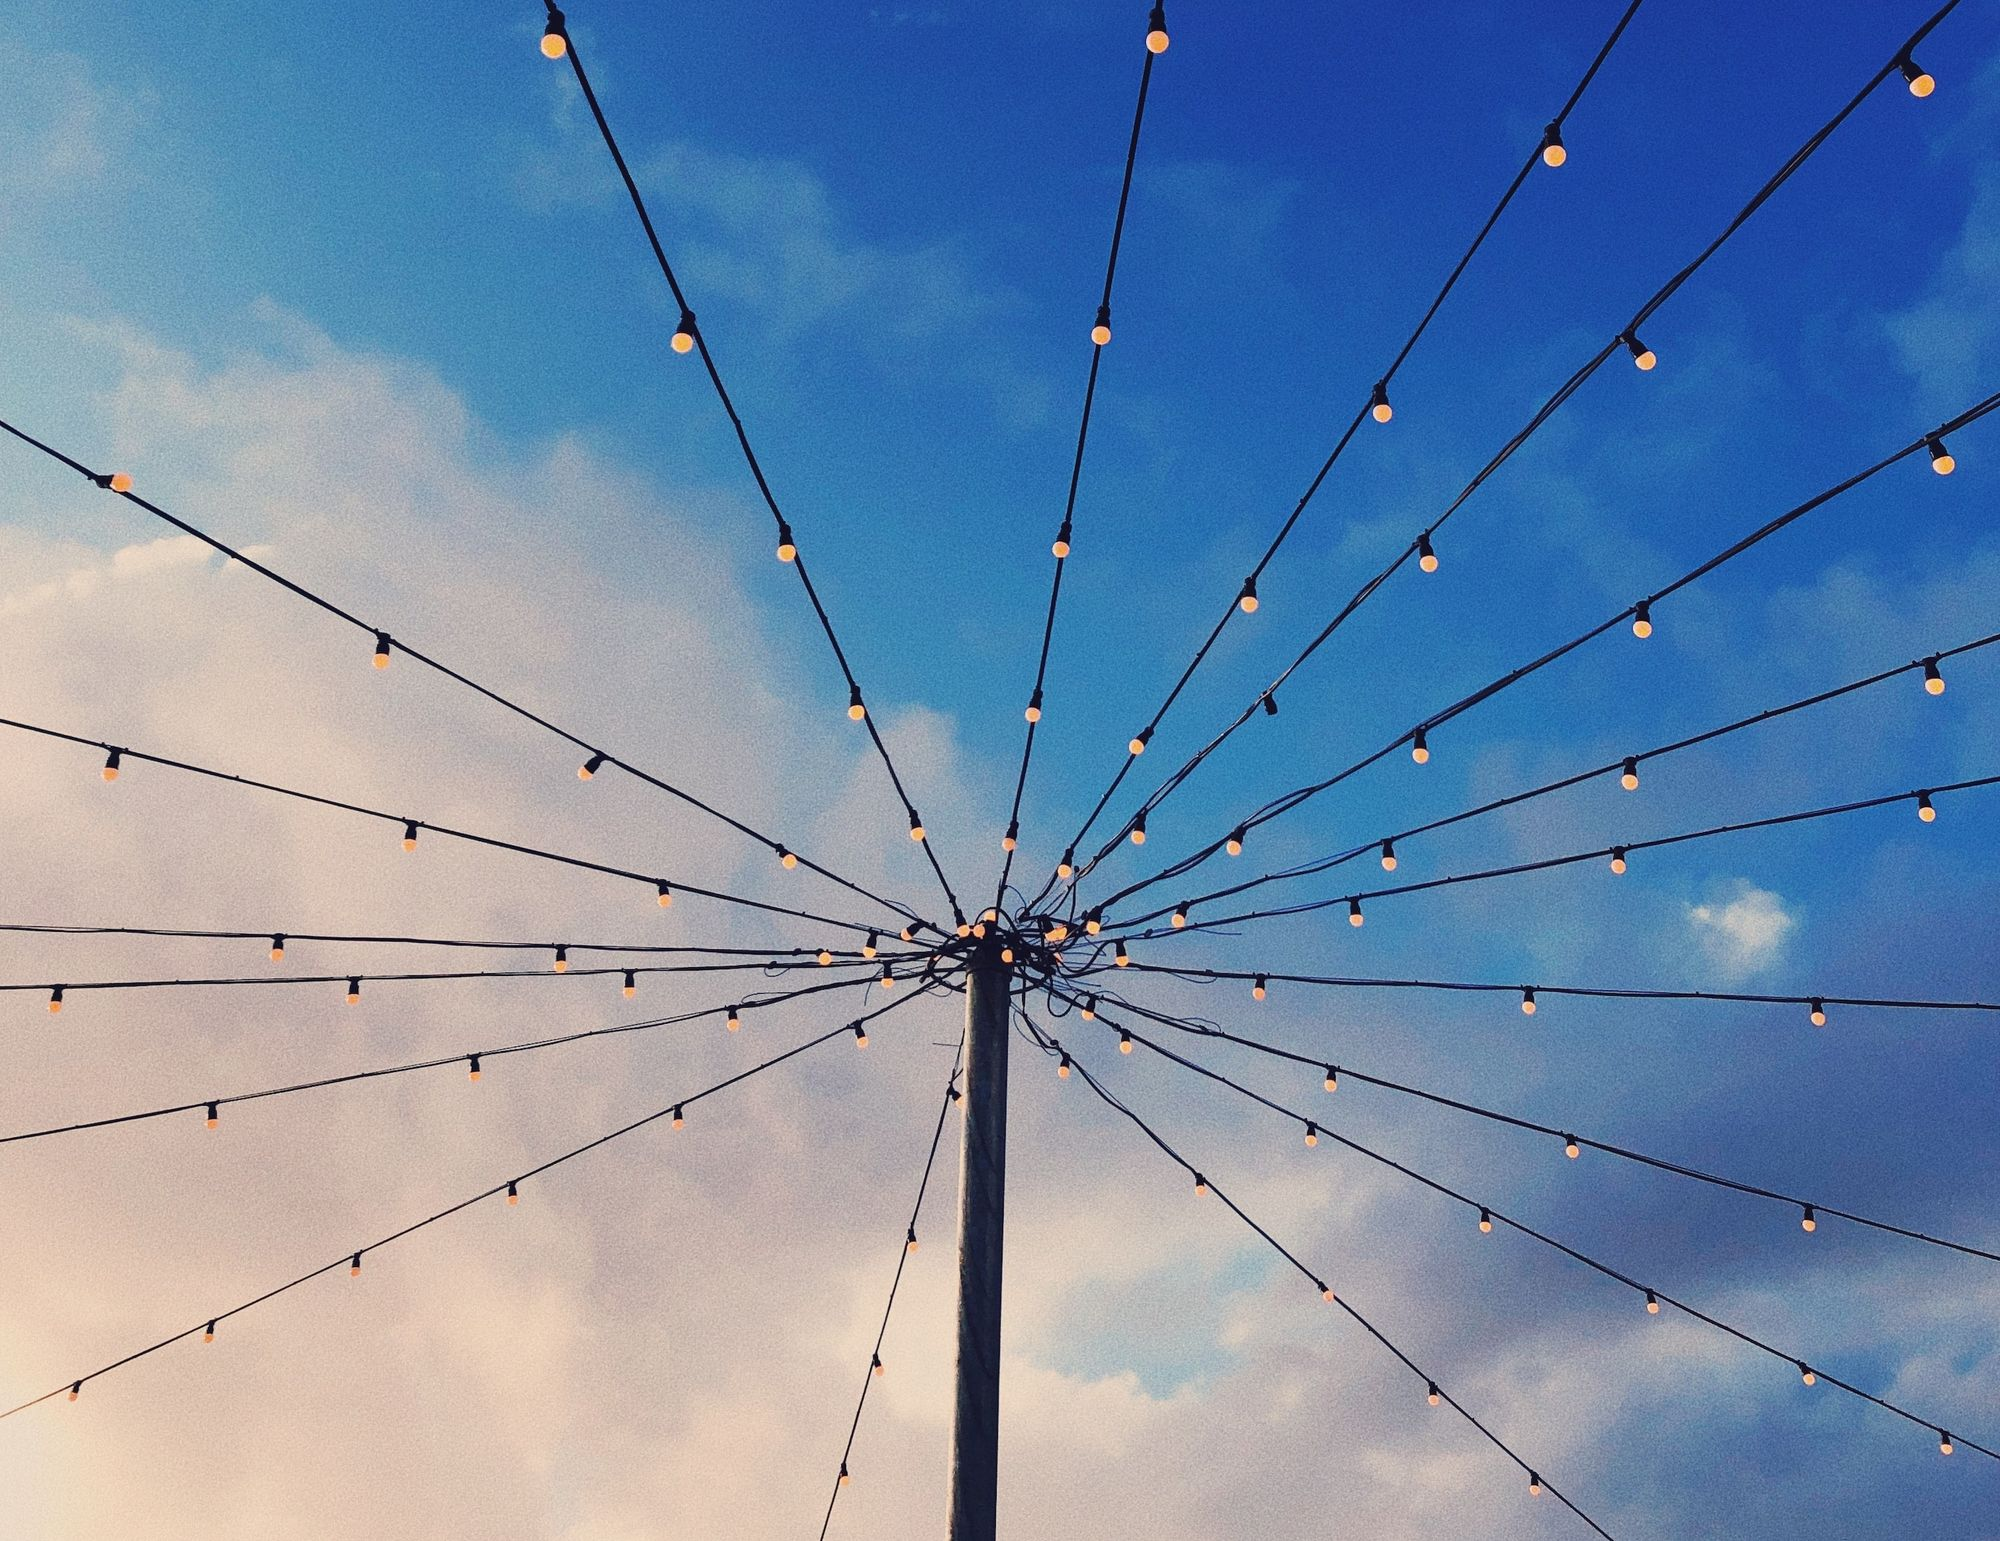 An image of a telephone pole with many wires covered in lights coming from it, against a blue cloudy sky